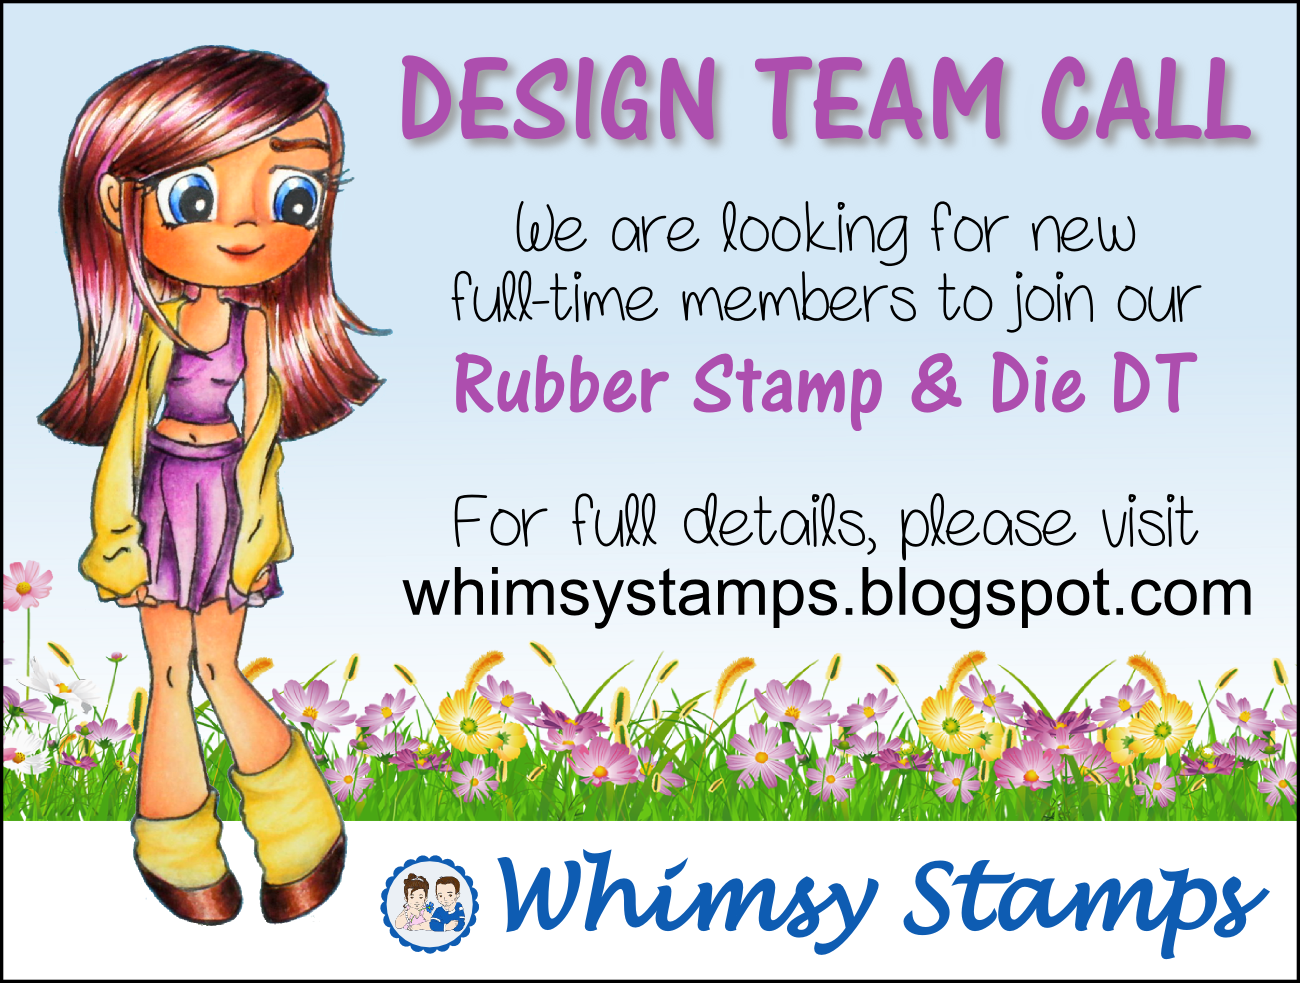 http://whimsystamps.blogspot.co.uk/2014/10/design-team-call.html